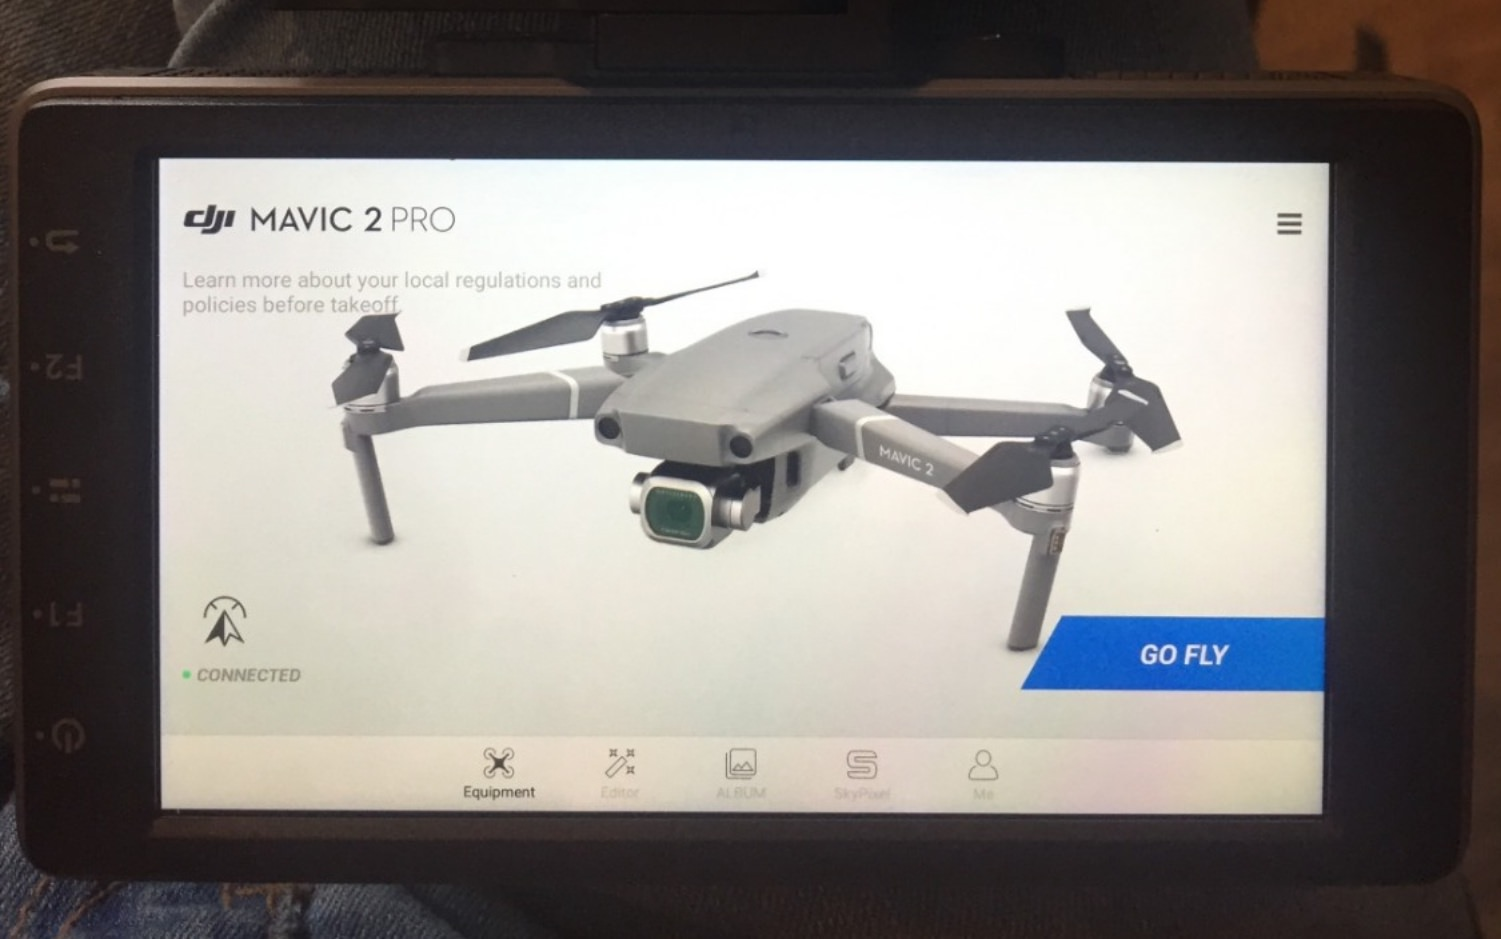 DJI's CrystalSky works with the DJI Mavic 2 Pro and Zoom as well